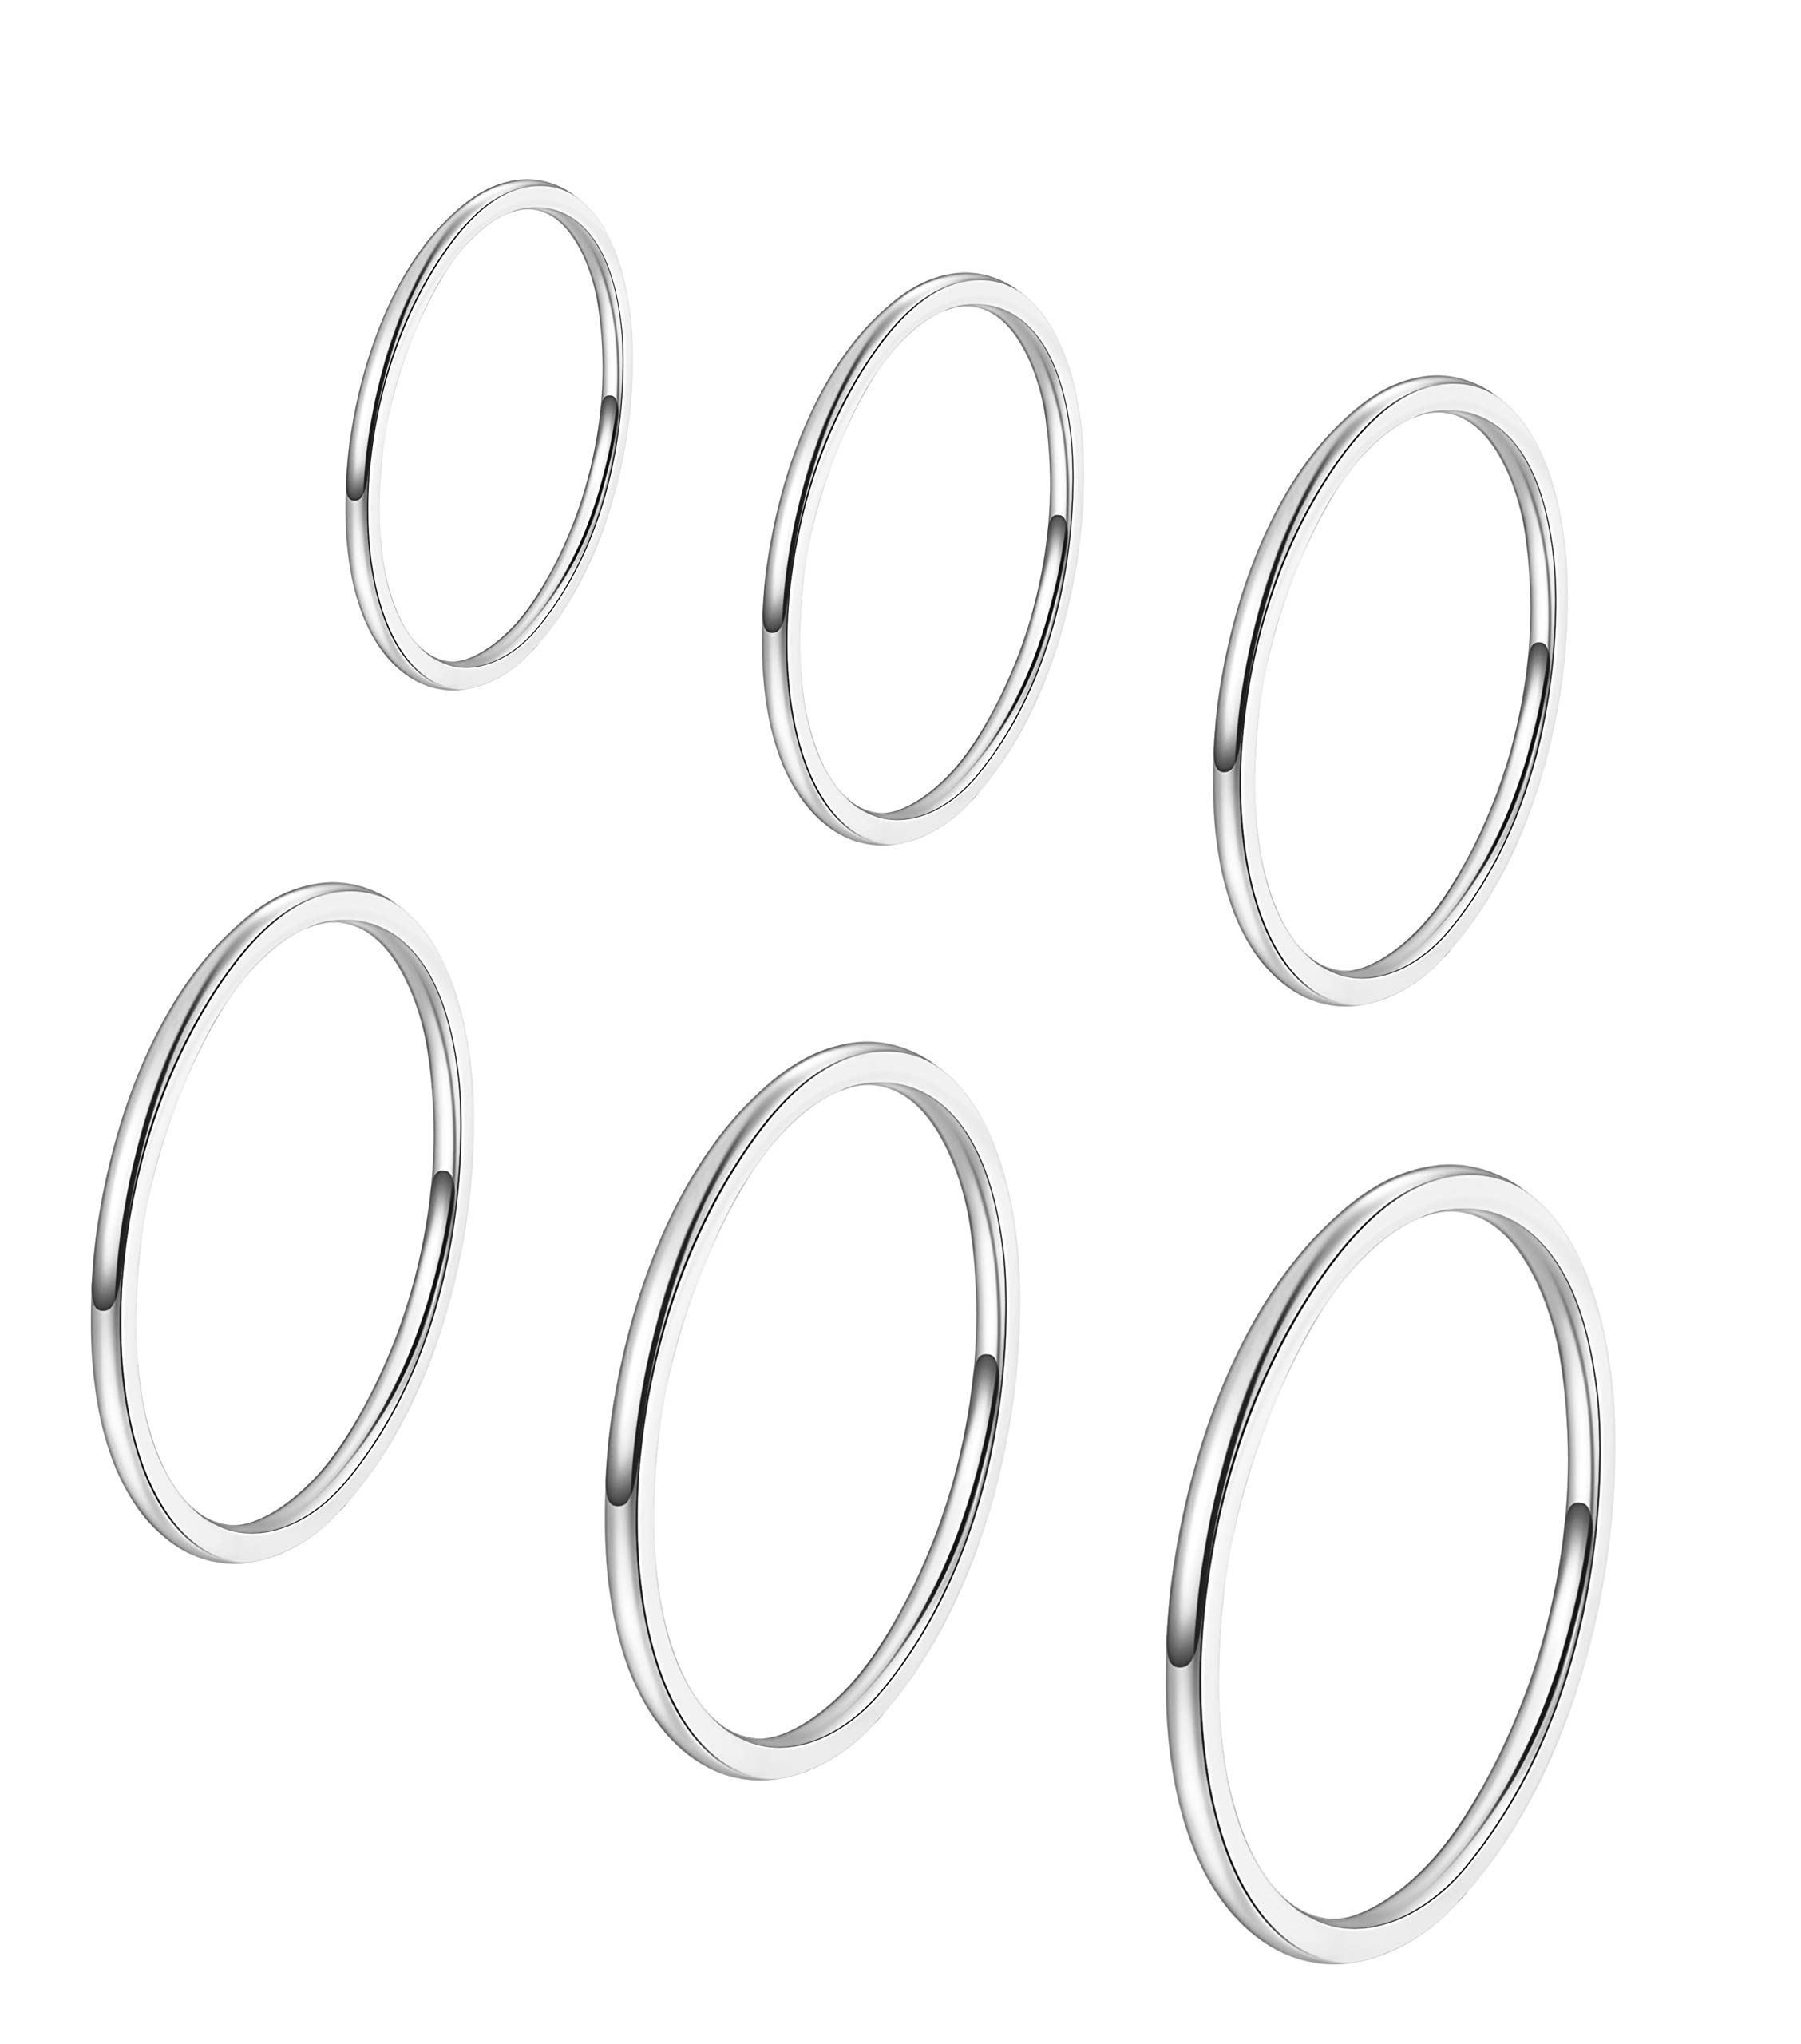 ALEXTINA Women's Set of 6 Stainless Steel 1MM Thin Midi Silver Stacking Rings Plain Band Dome Finish Size 4 to 9 by ALEXTINA